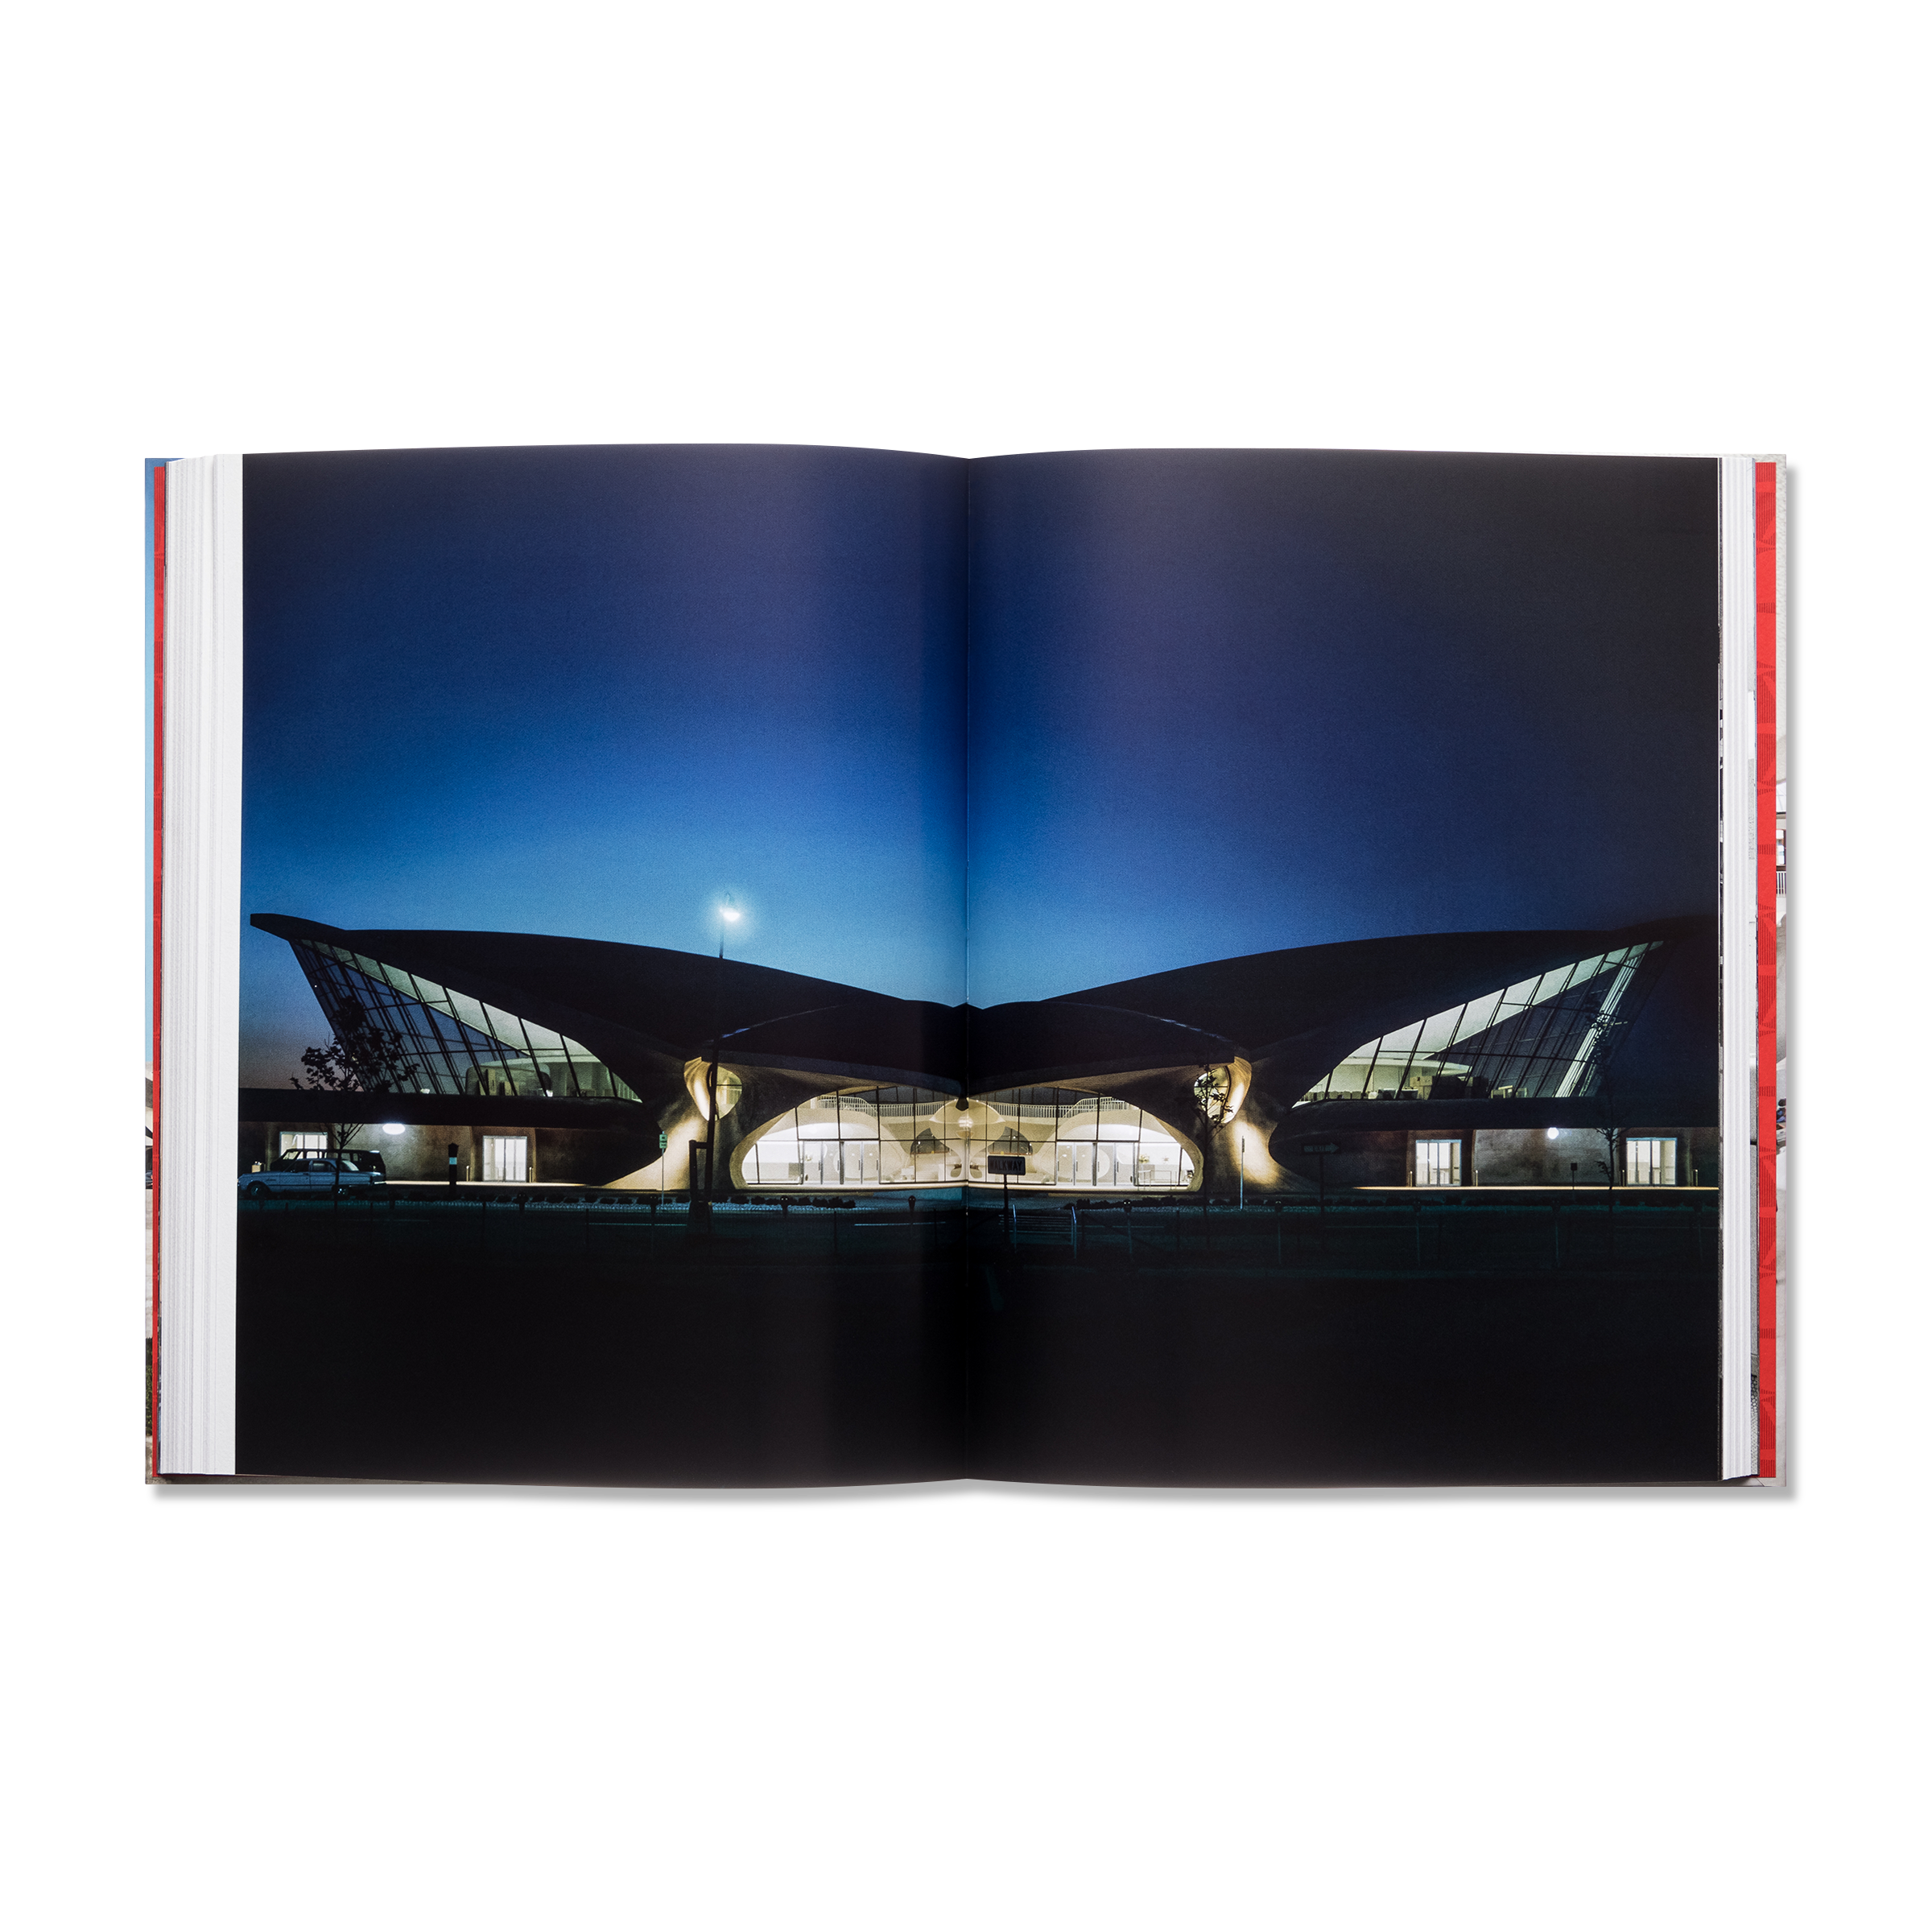 Opened book product photography